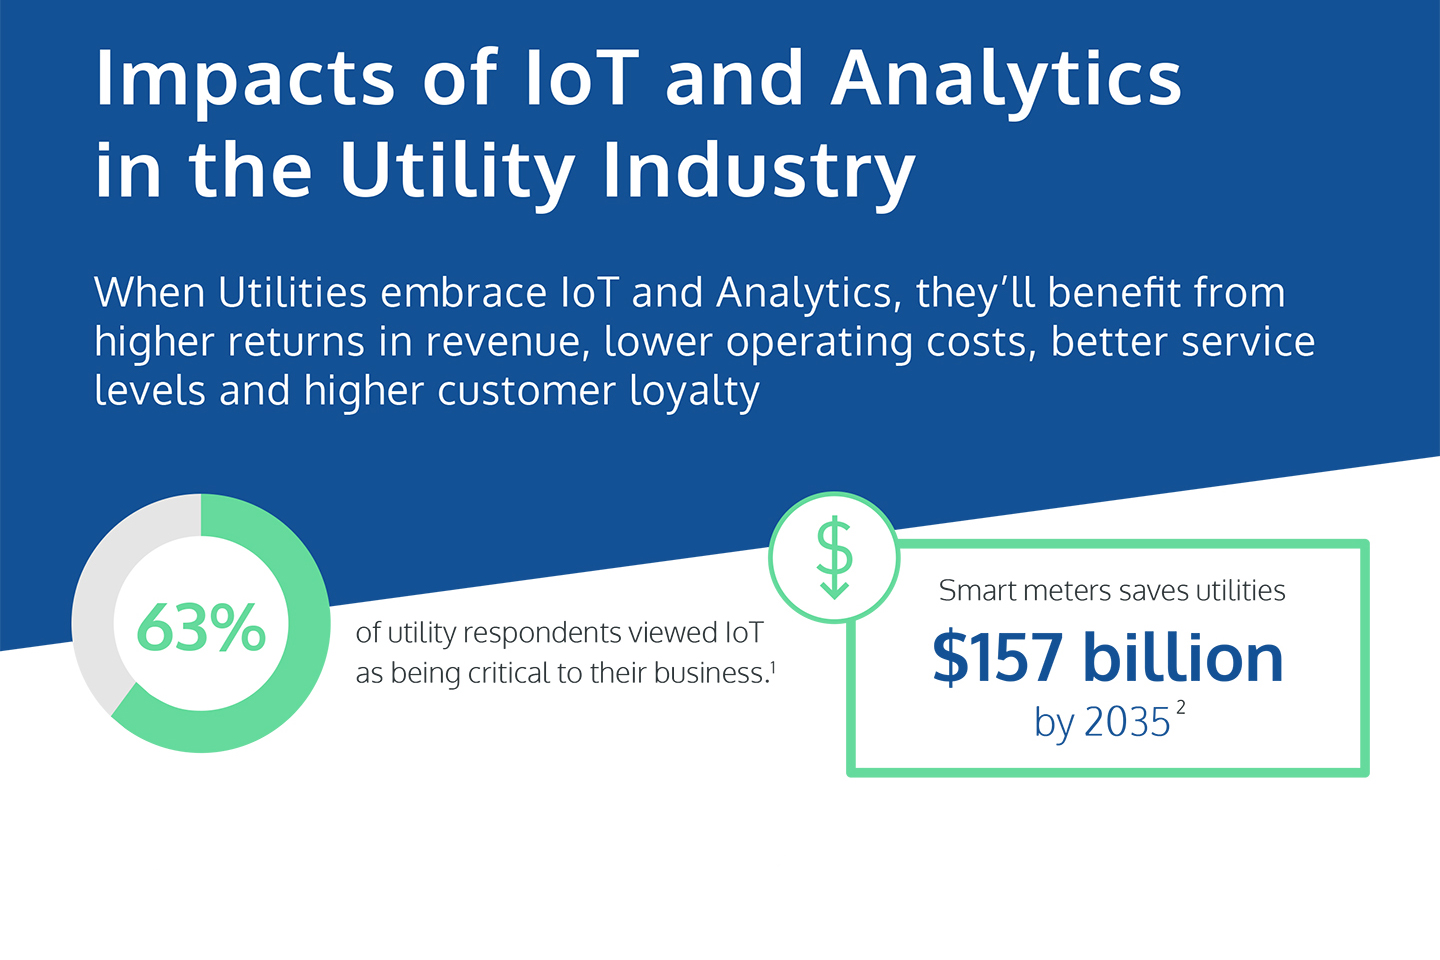 Impacts of IoT and Analytics in the Utility Industry